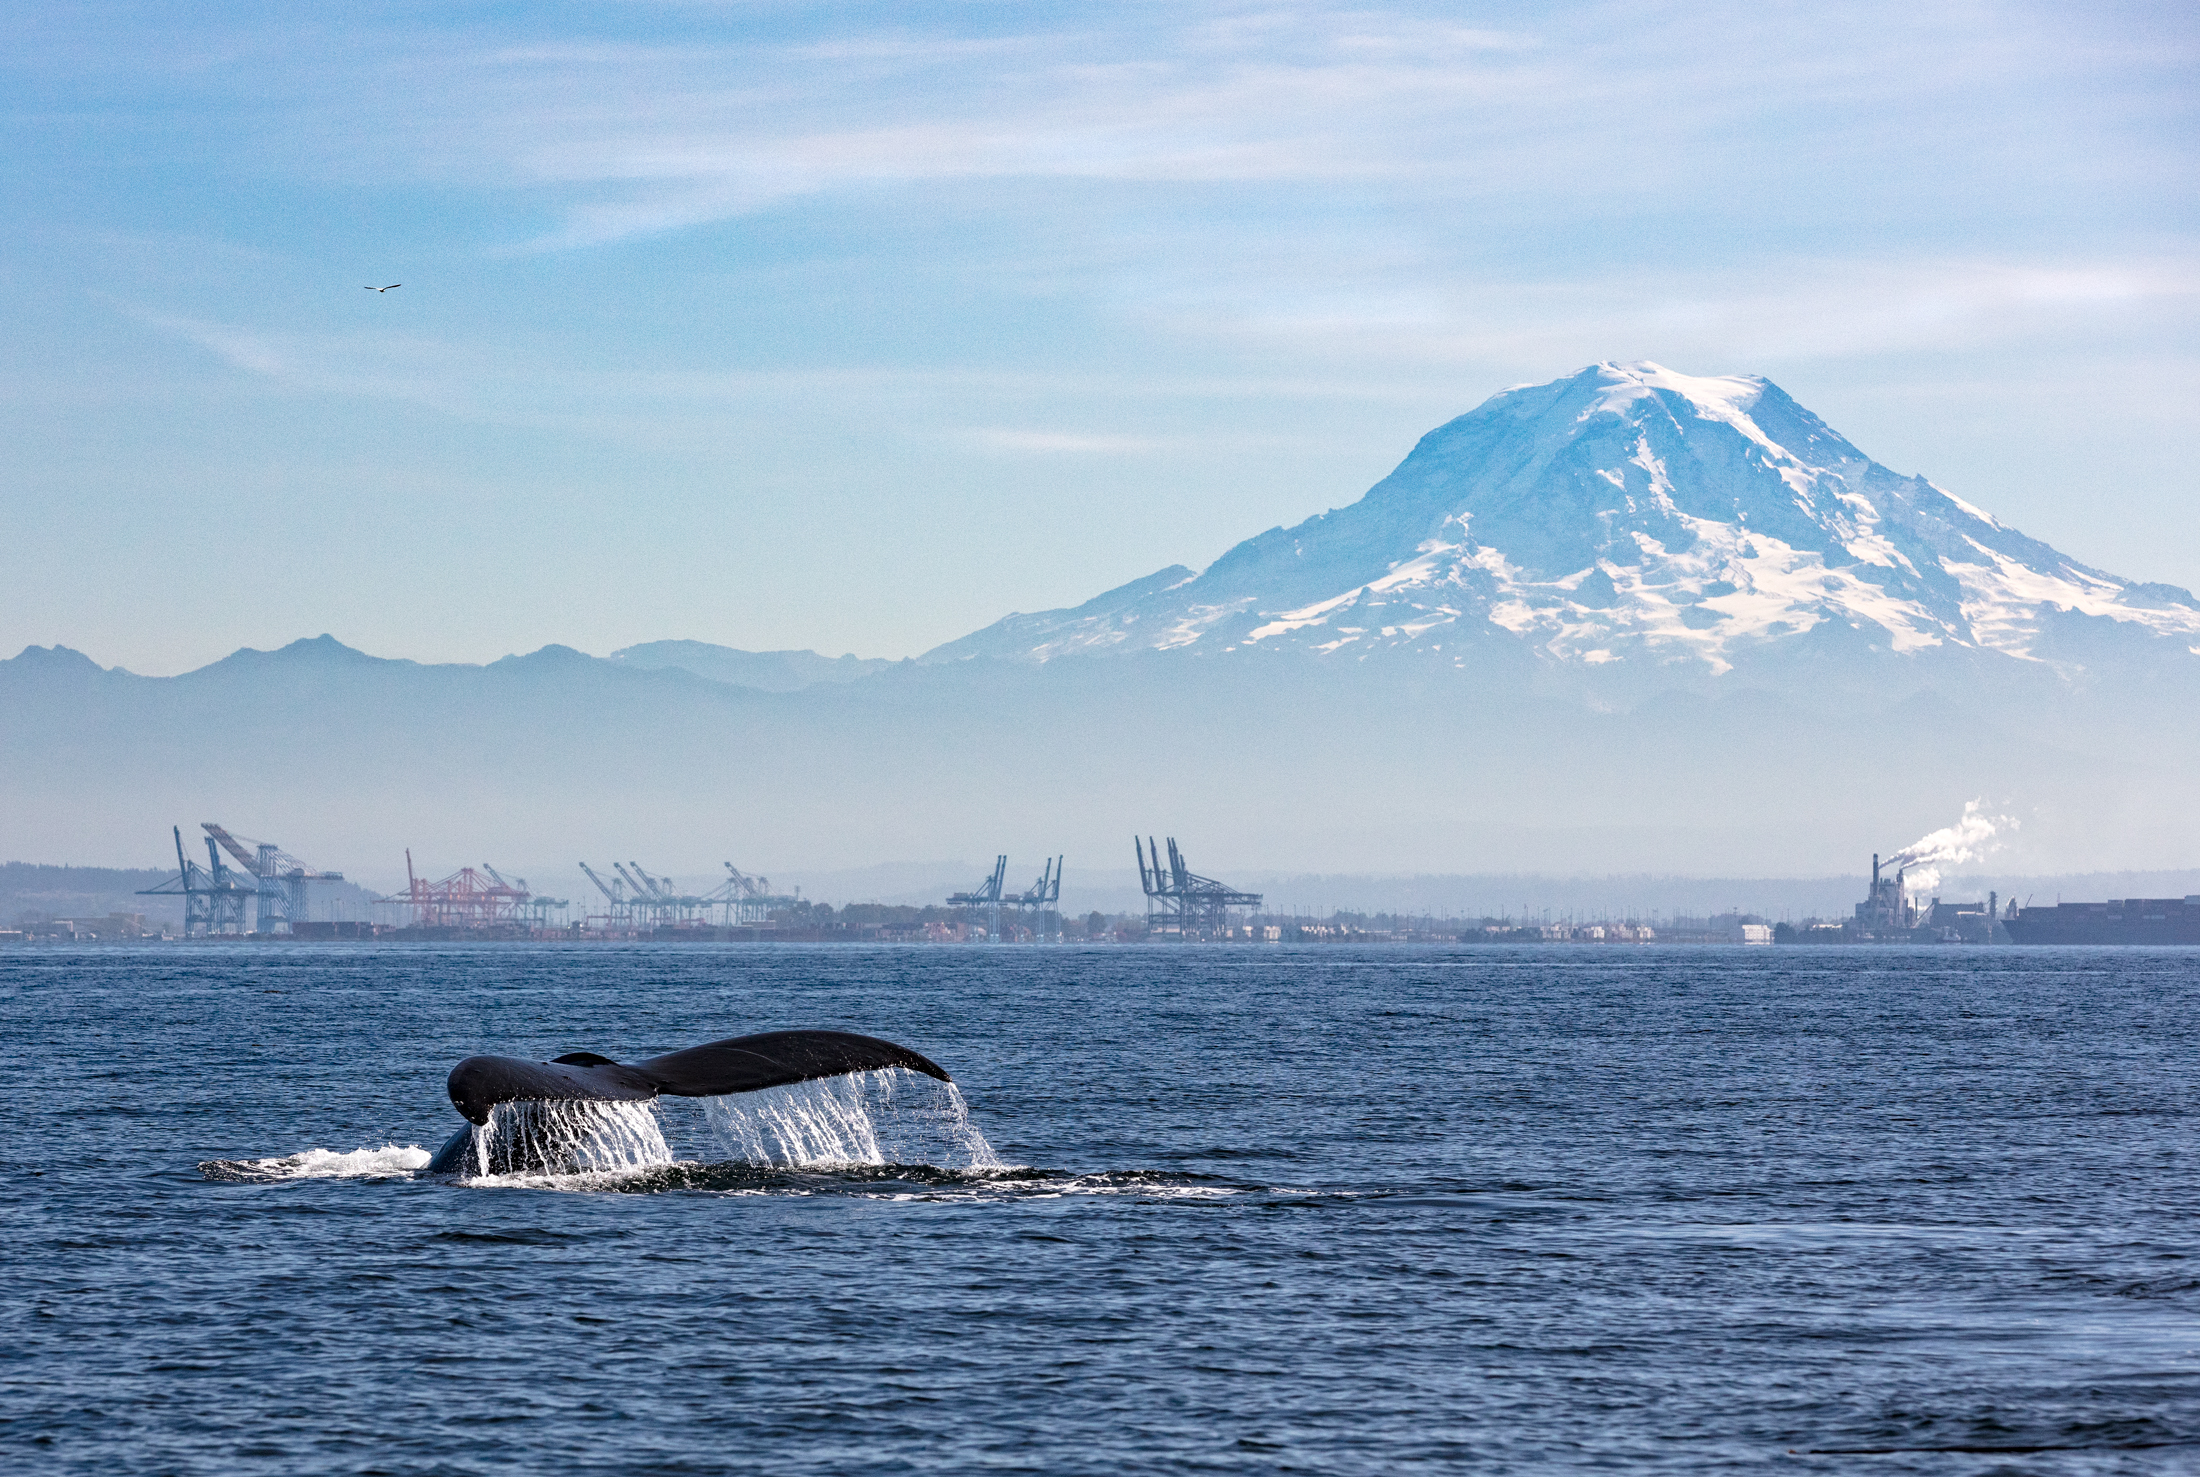 humpback-whale-tail-mount-rainier.jpg